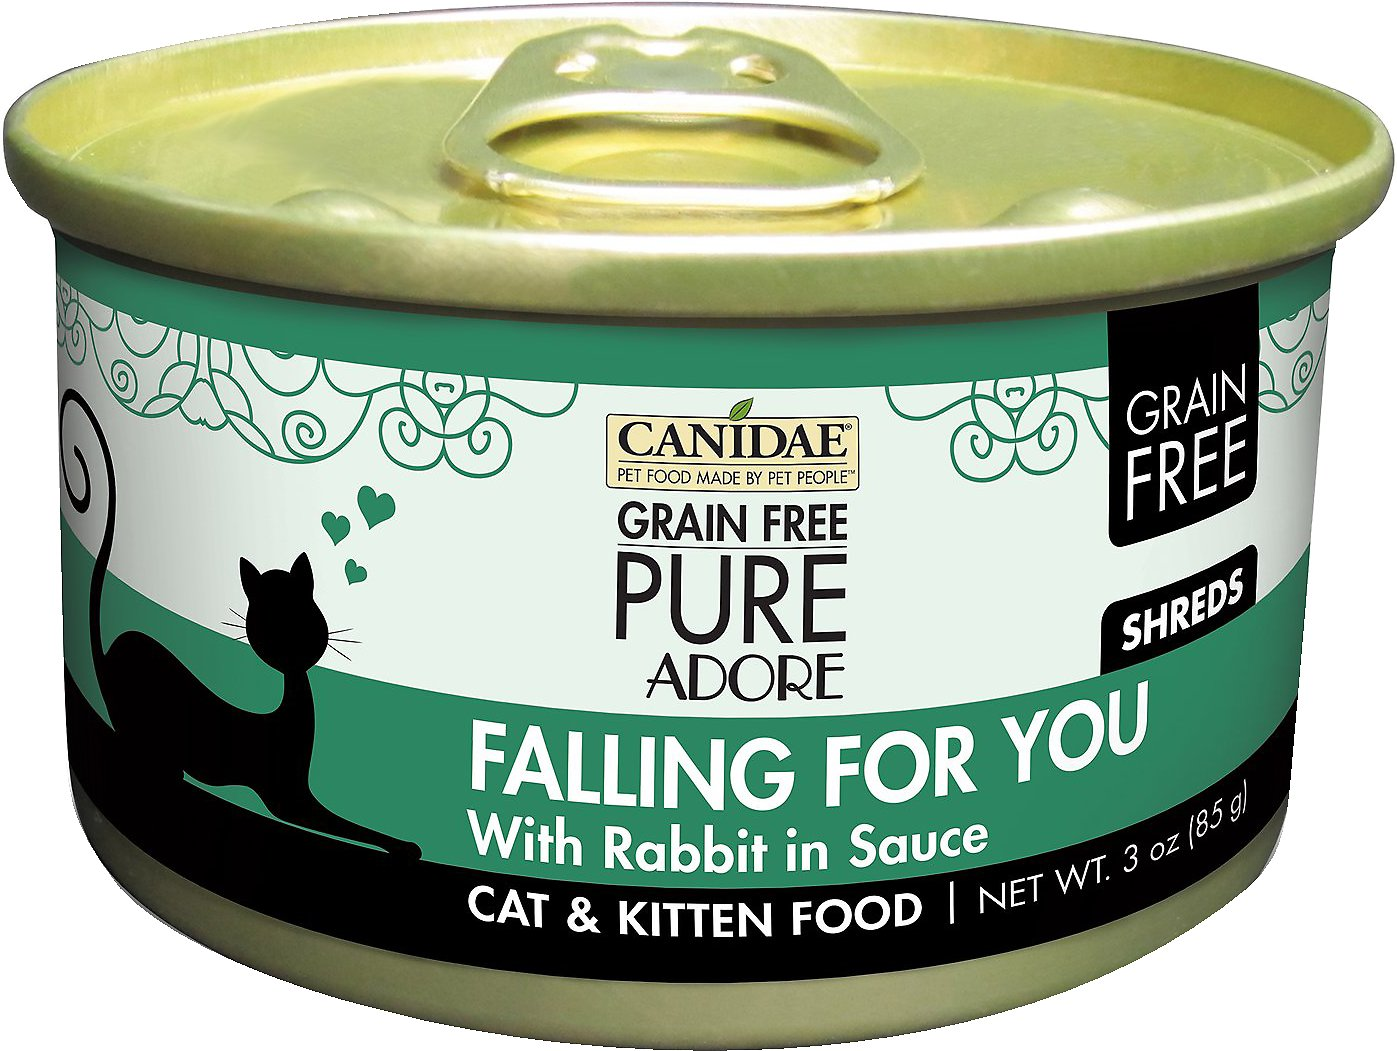 CANIDAE Grain-Free PURE Adore Falling For You with Rabbit Canned Cat Food, 3-oz